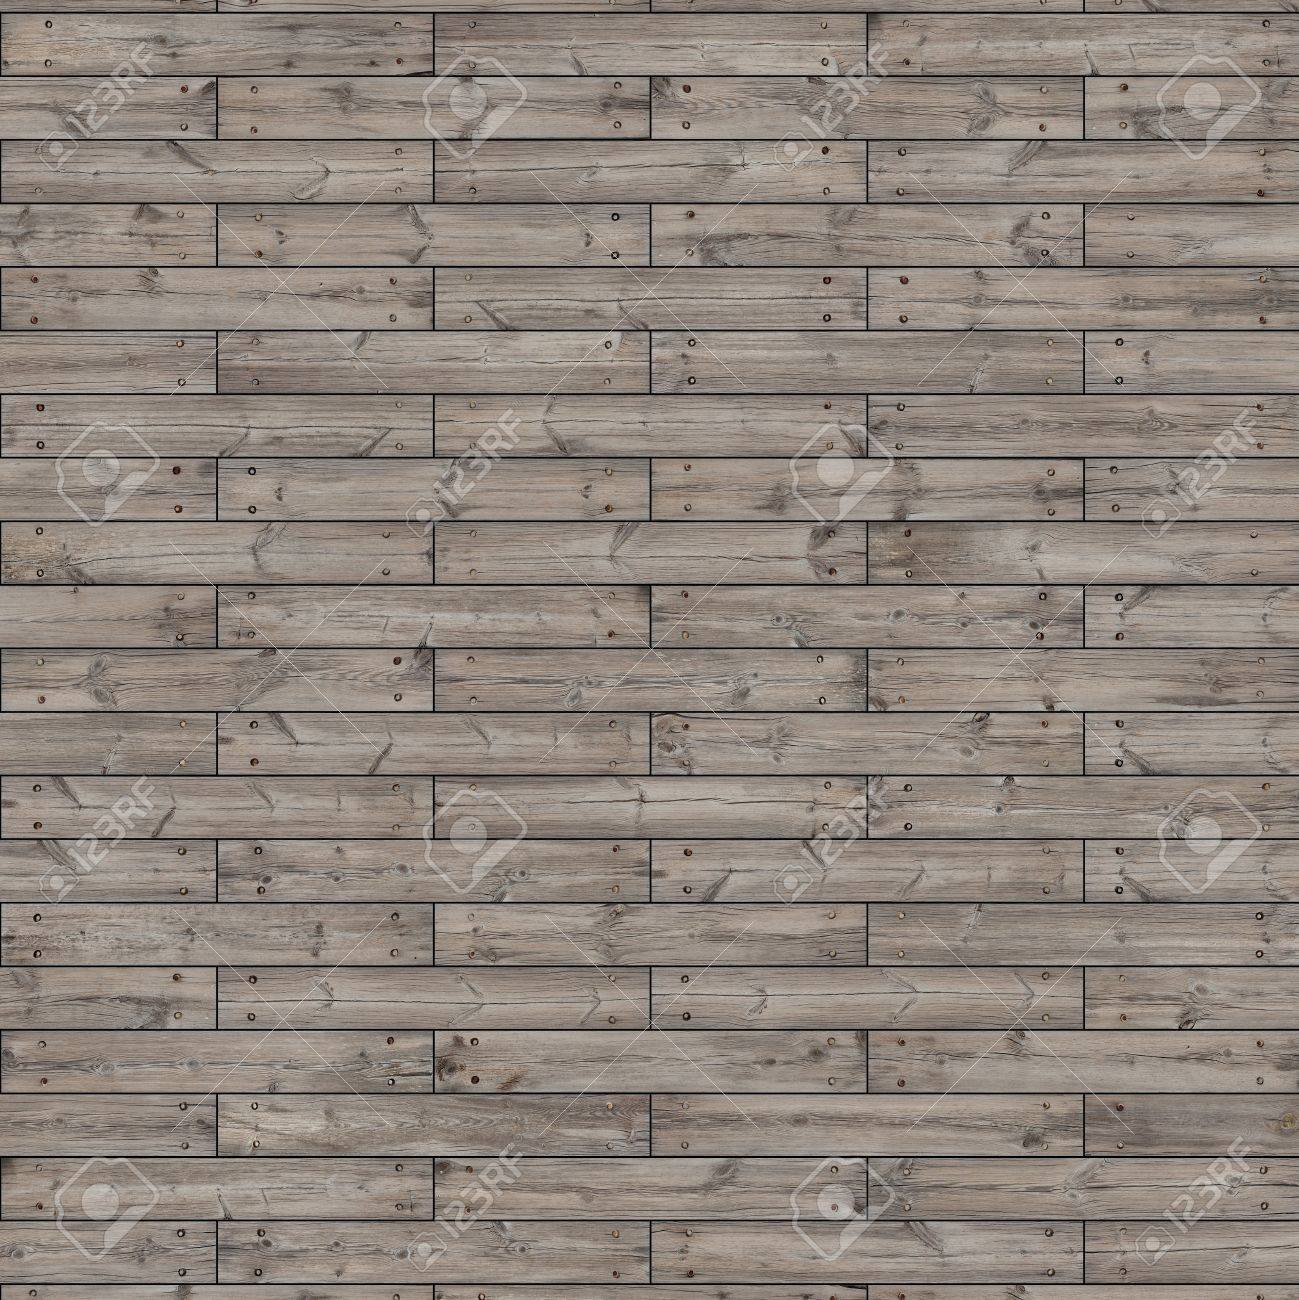 Wooden floor texture with knots and cracks Stock Photo - 14745937